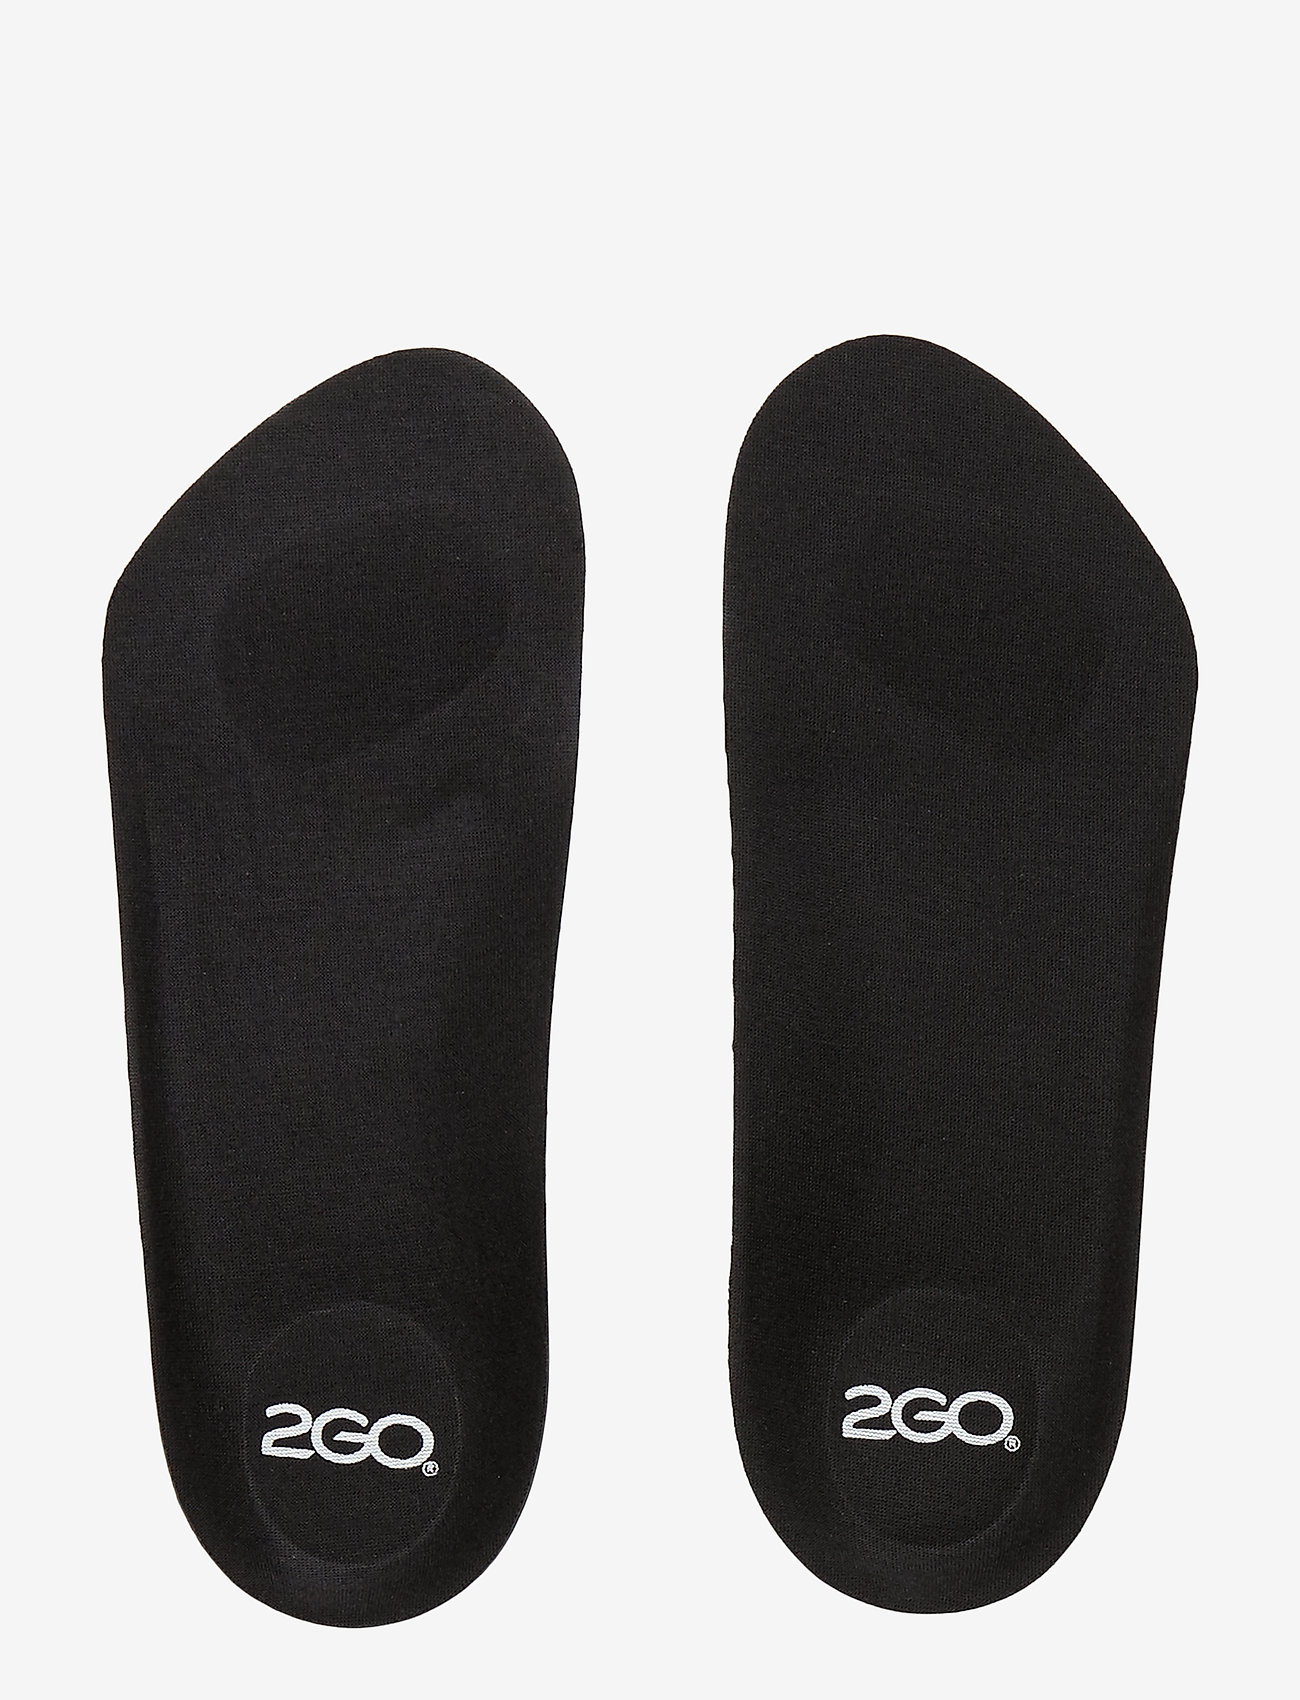 2go Enjoy (Black) (15 €) - 2GO XyJpa